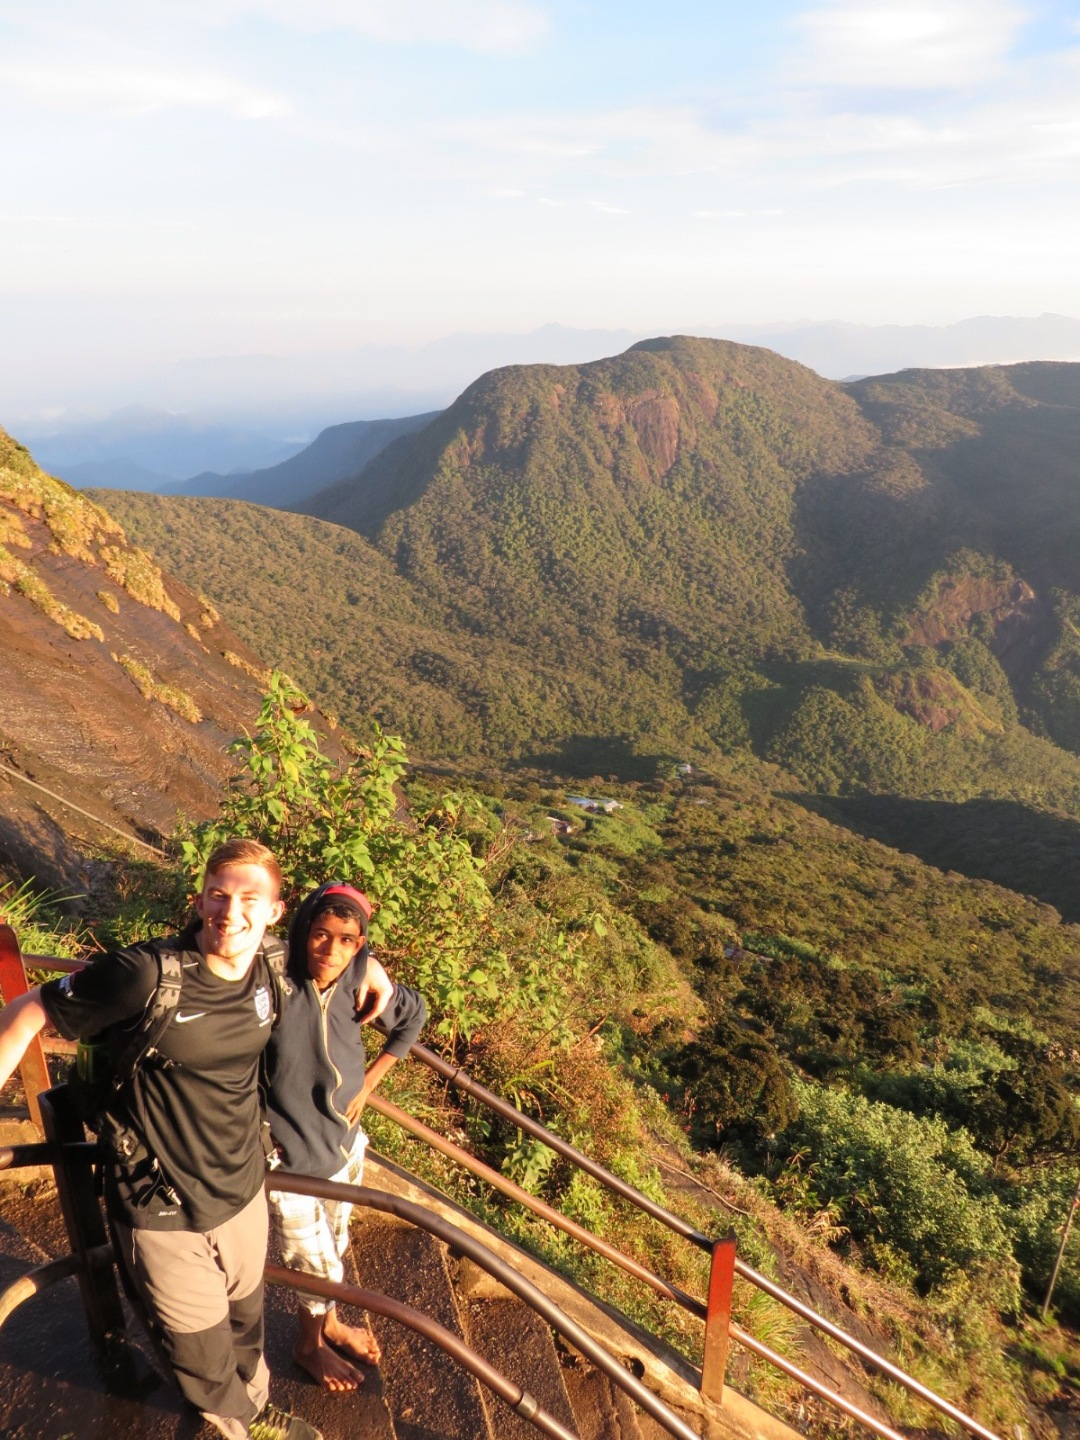 james stands with a local lad who was climbing Adams Peak with a friend